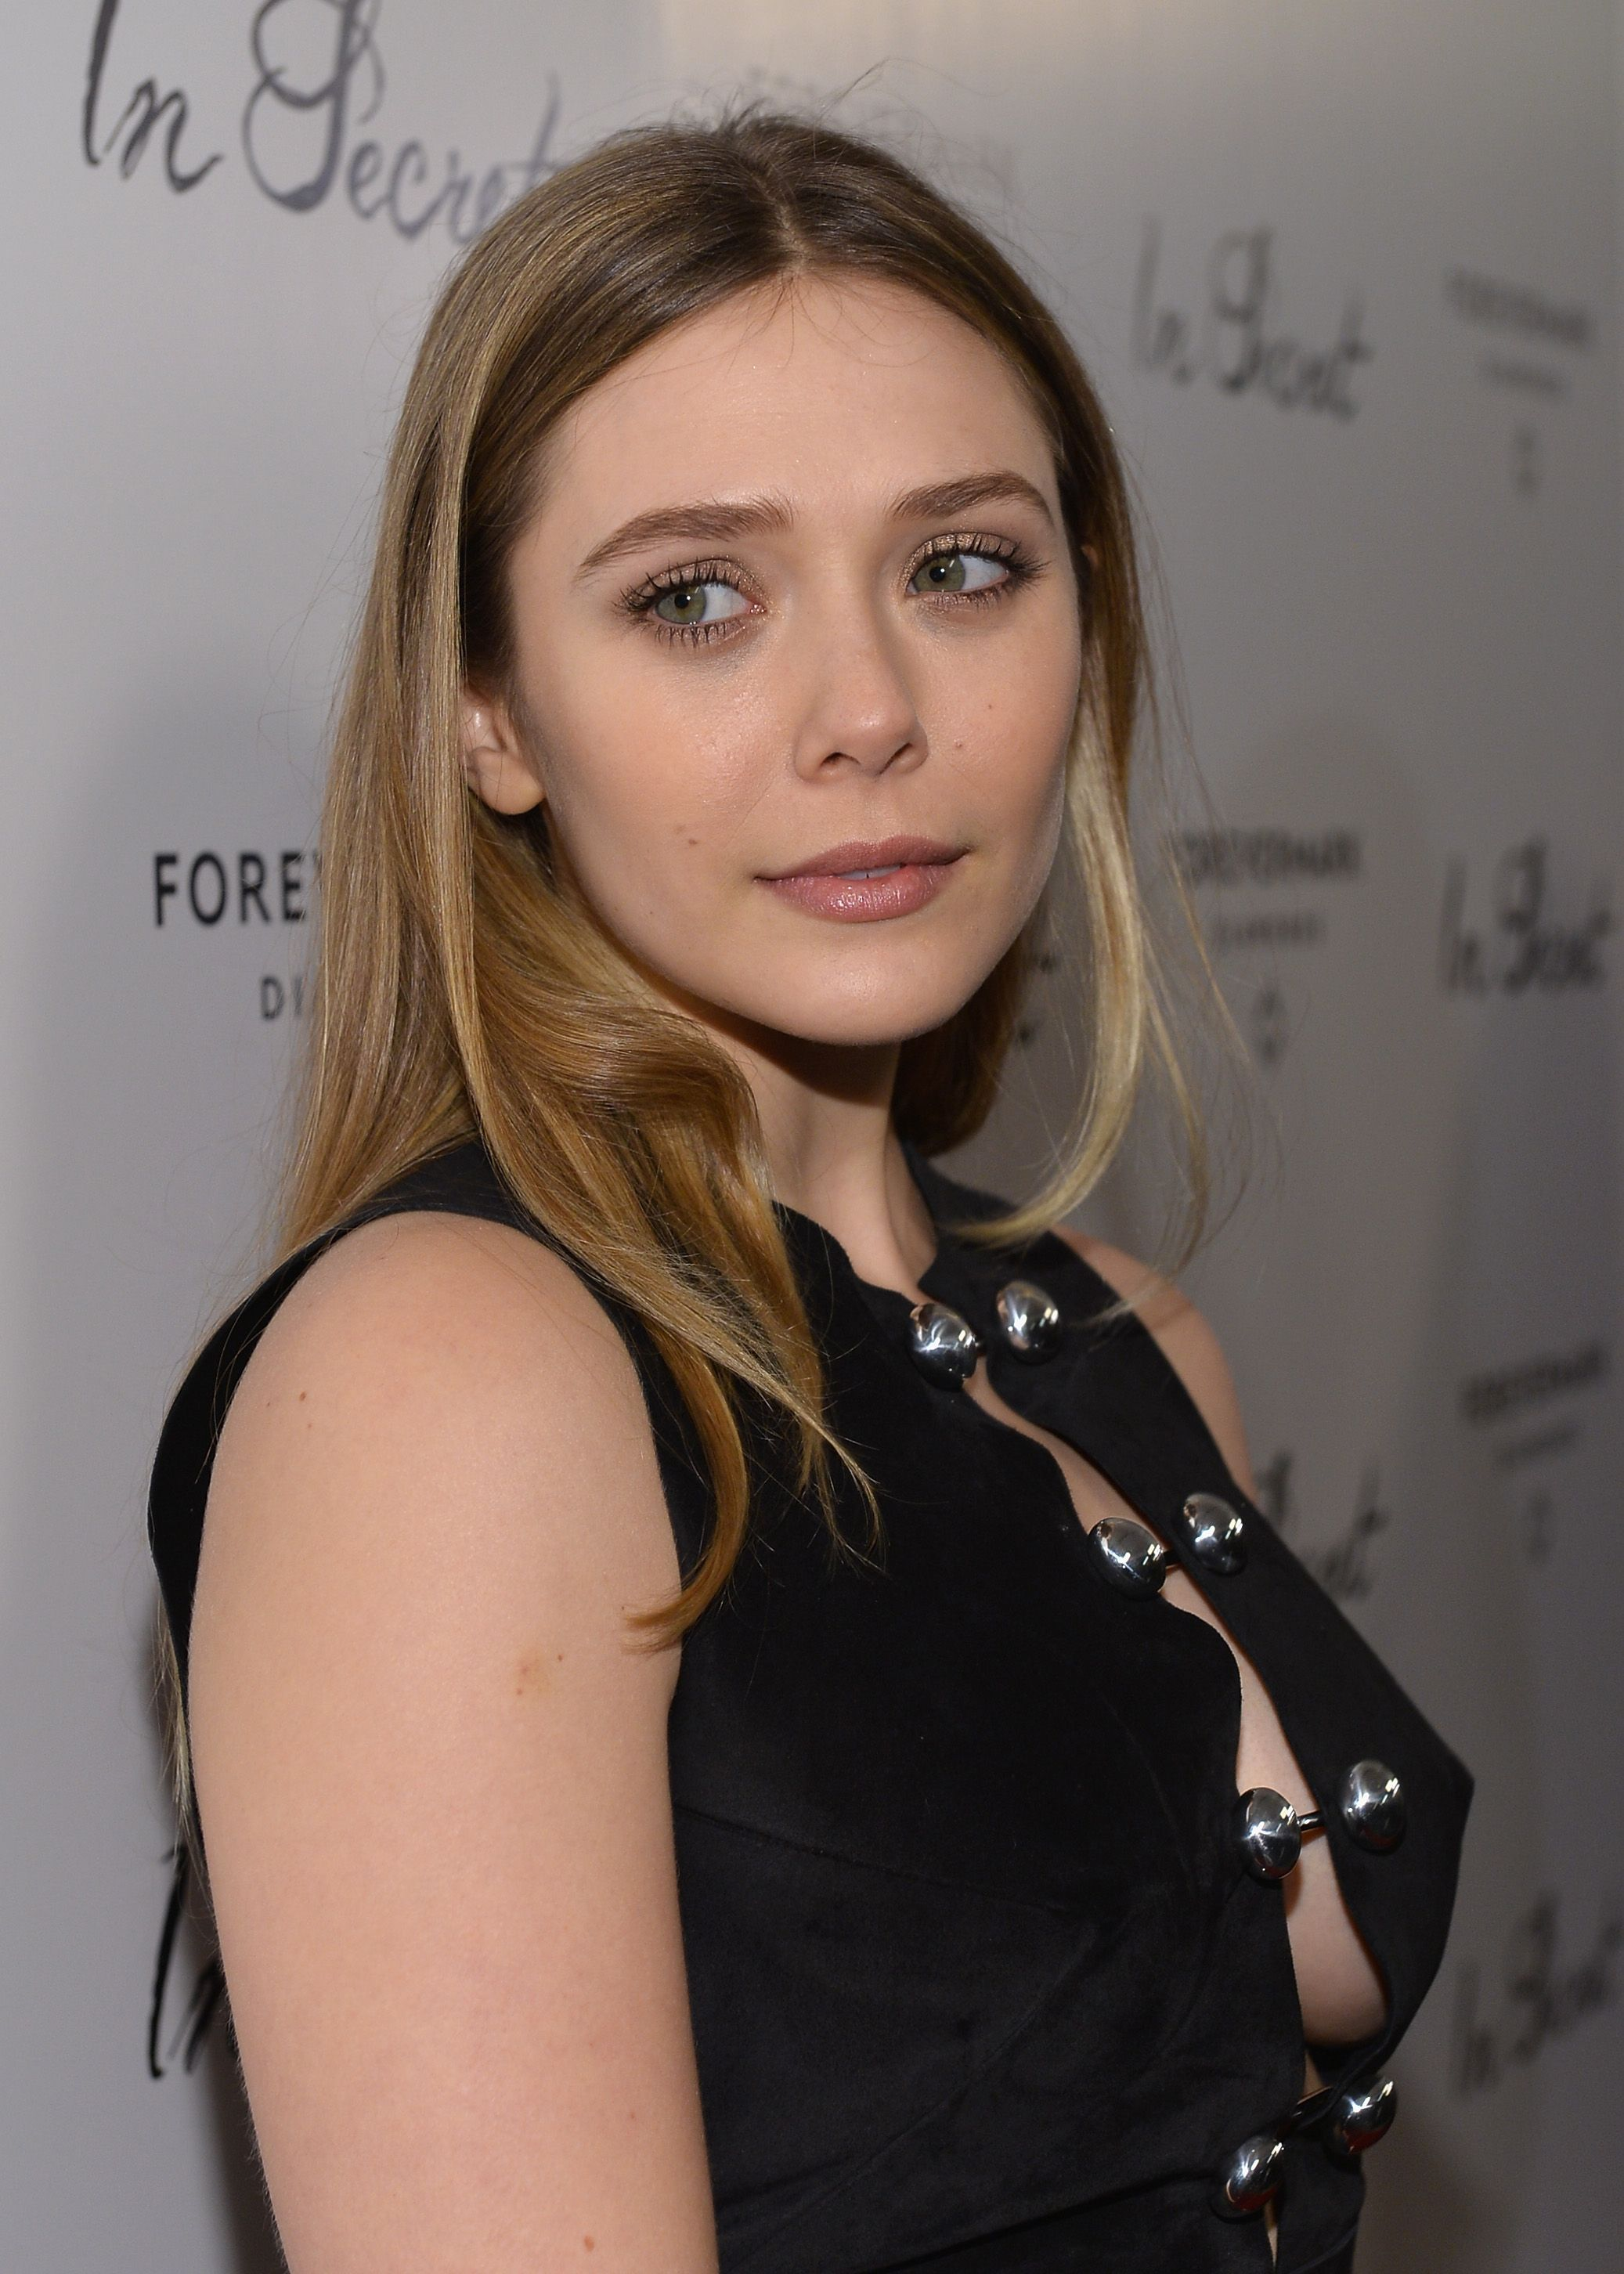 Think, what Mary kate and ashley olsen boobs remarkable, very